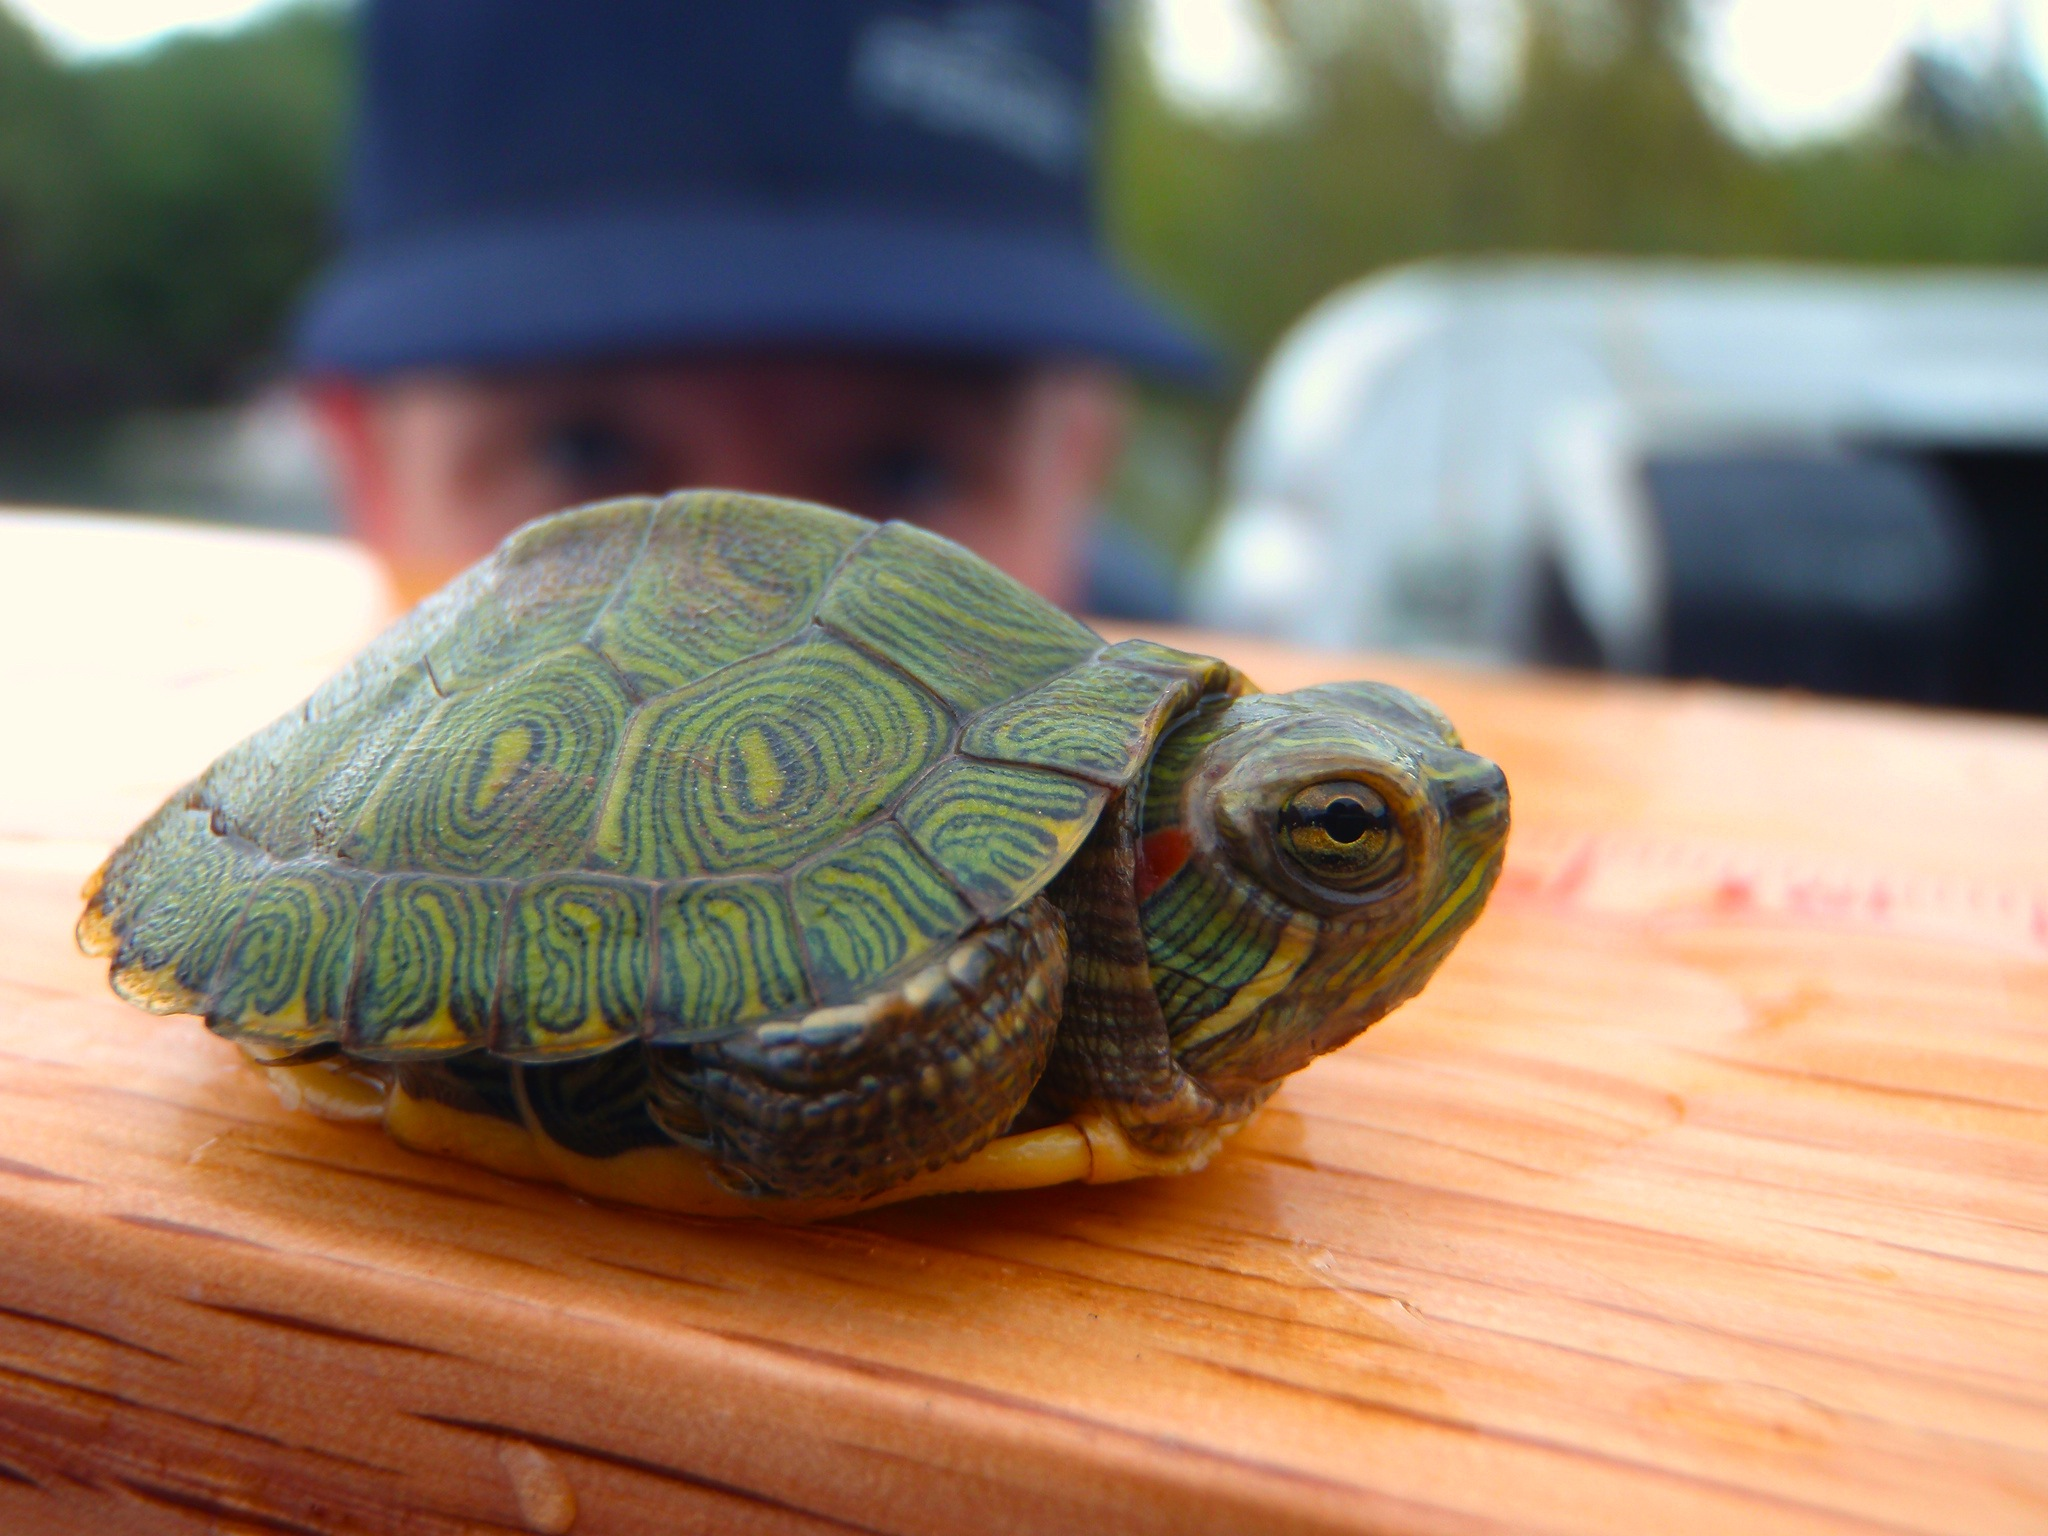 Little red-eared slider